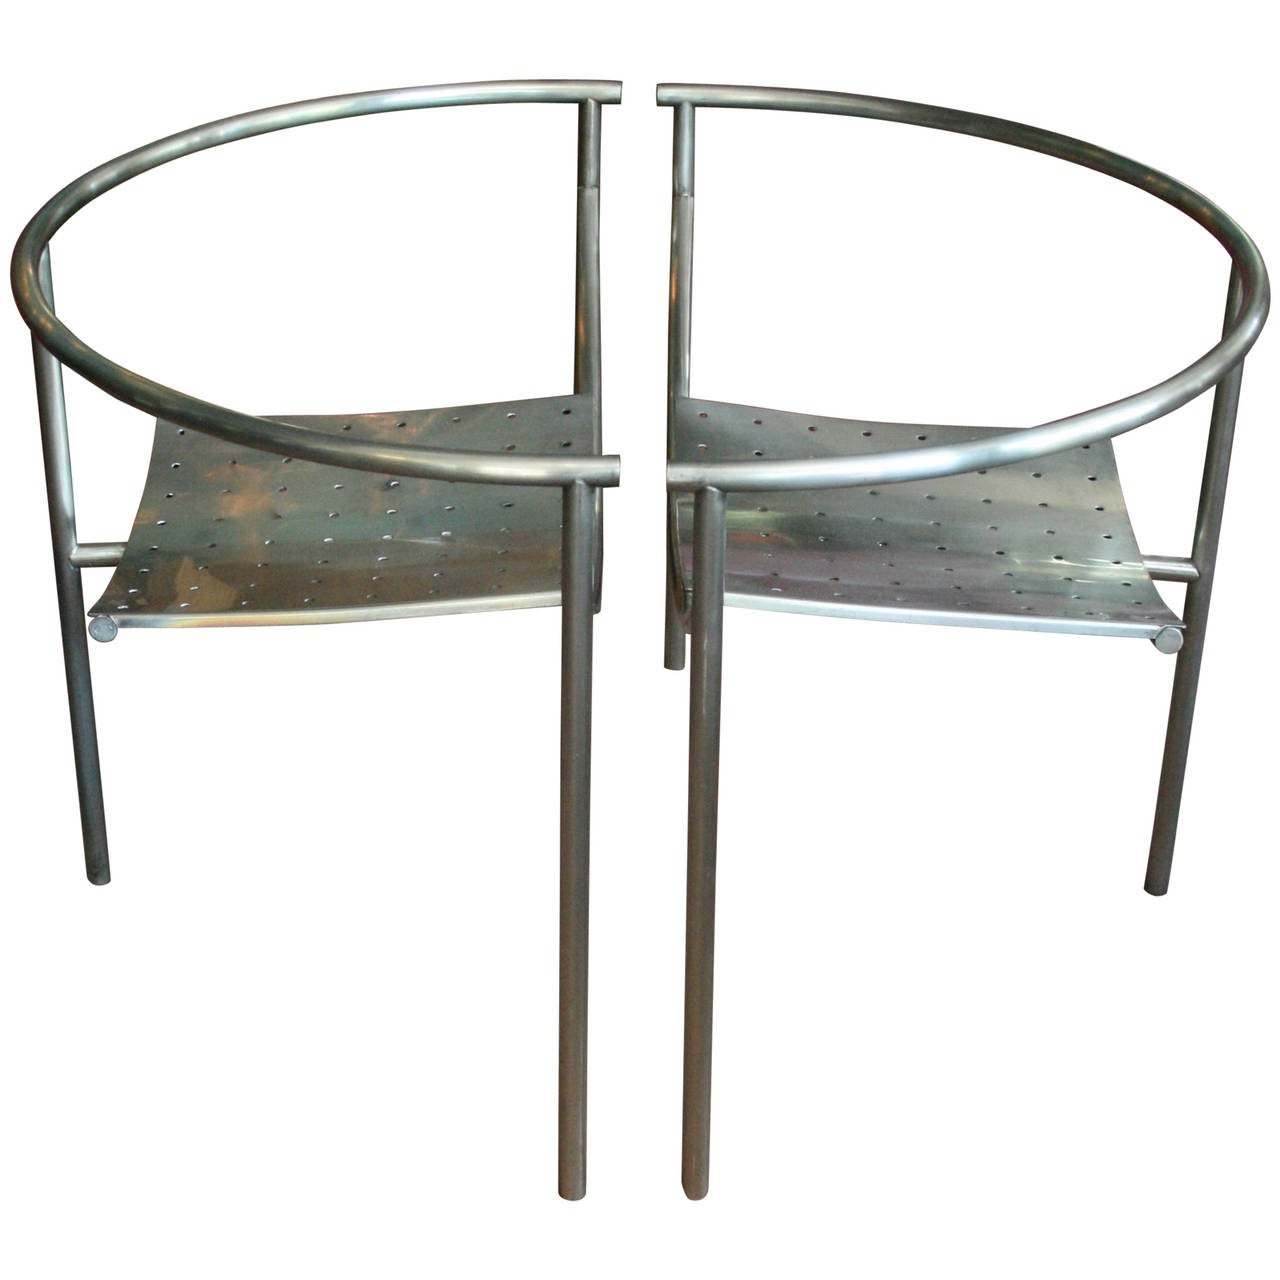 Pair of original dr sonderbar chairs by philippe starck at 1stdibs - Chaises philippe starck ...